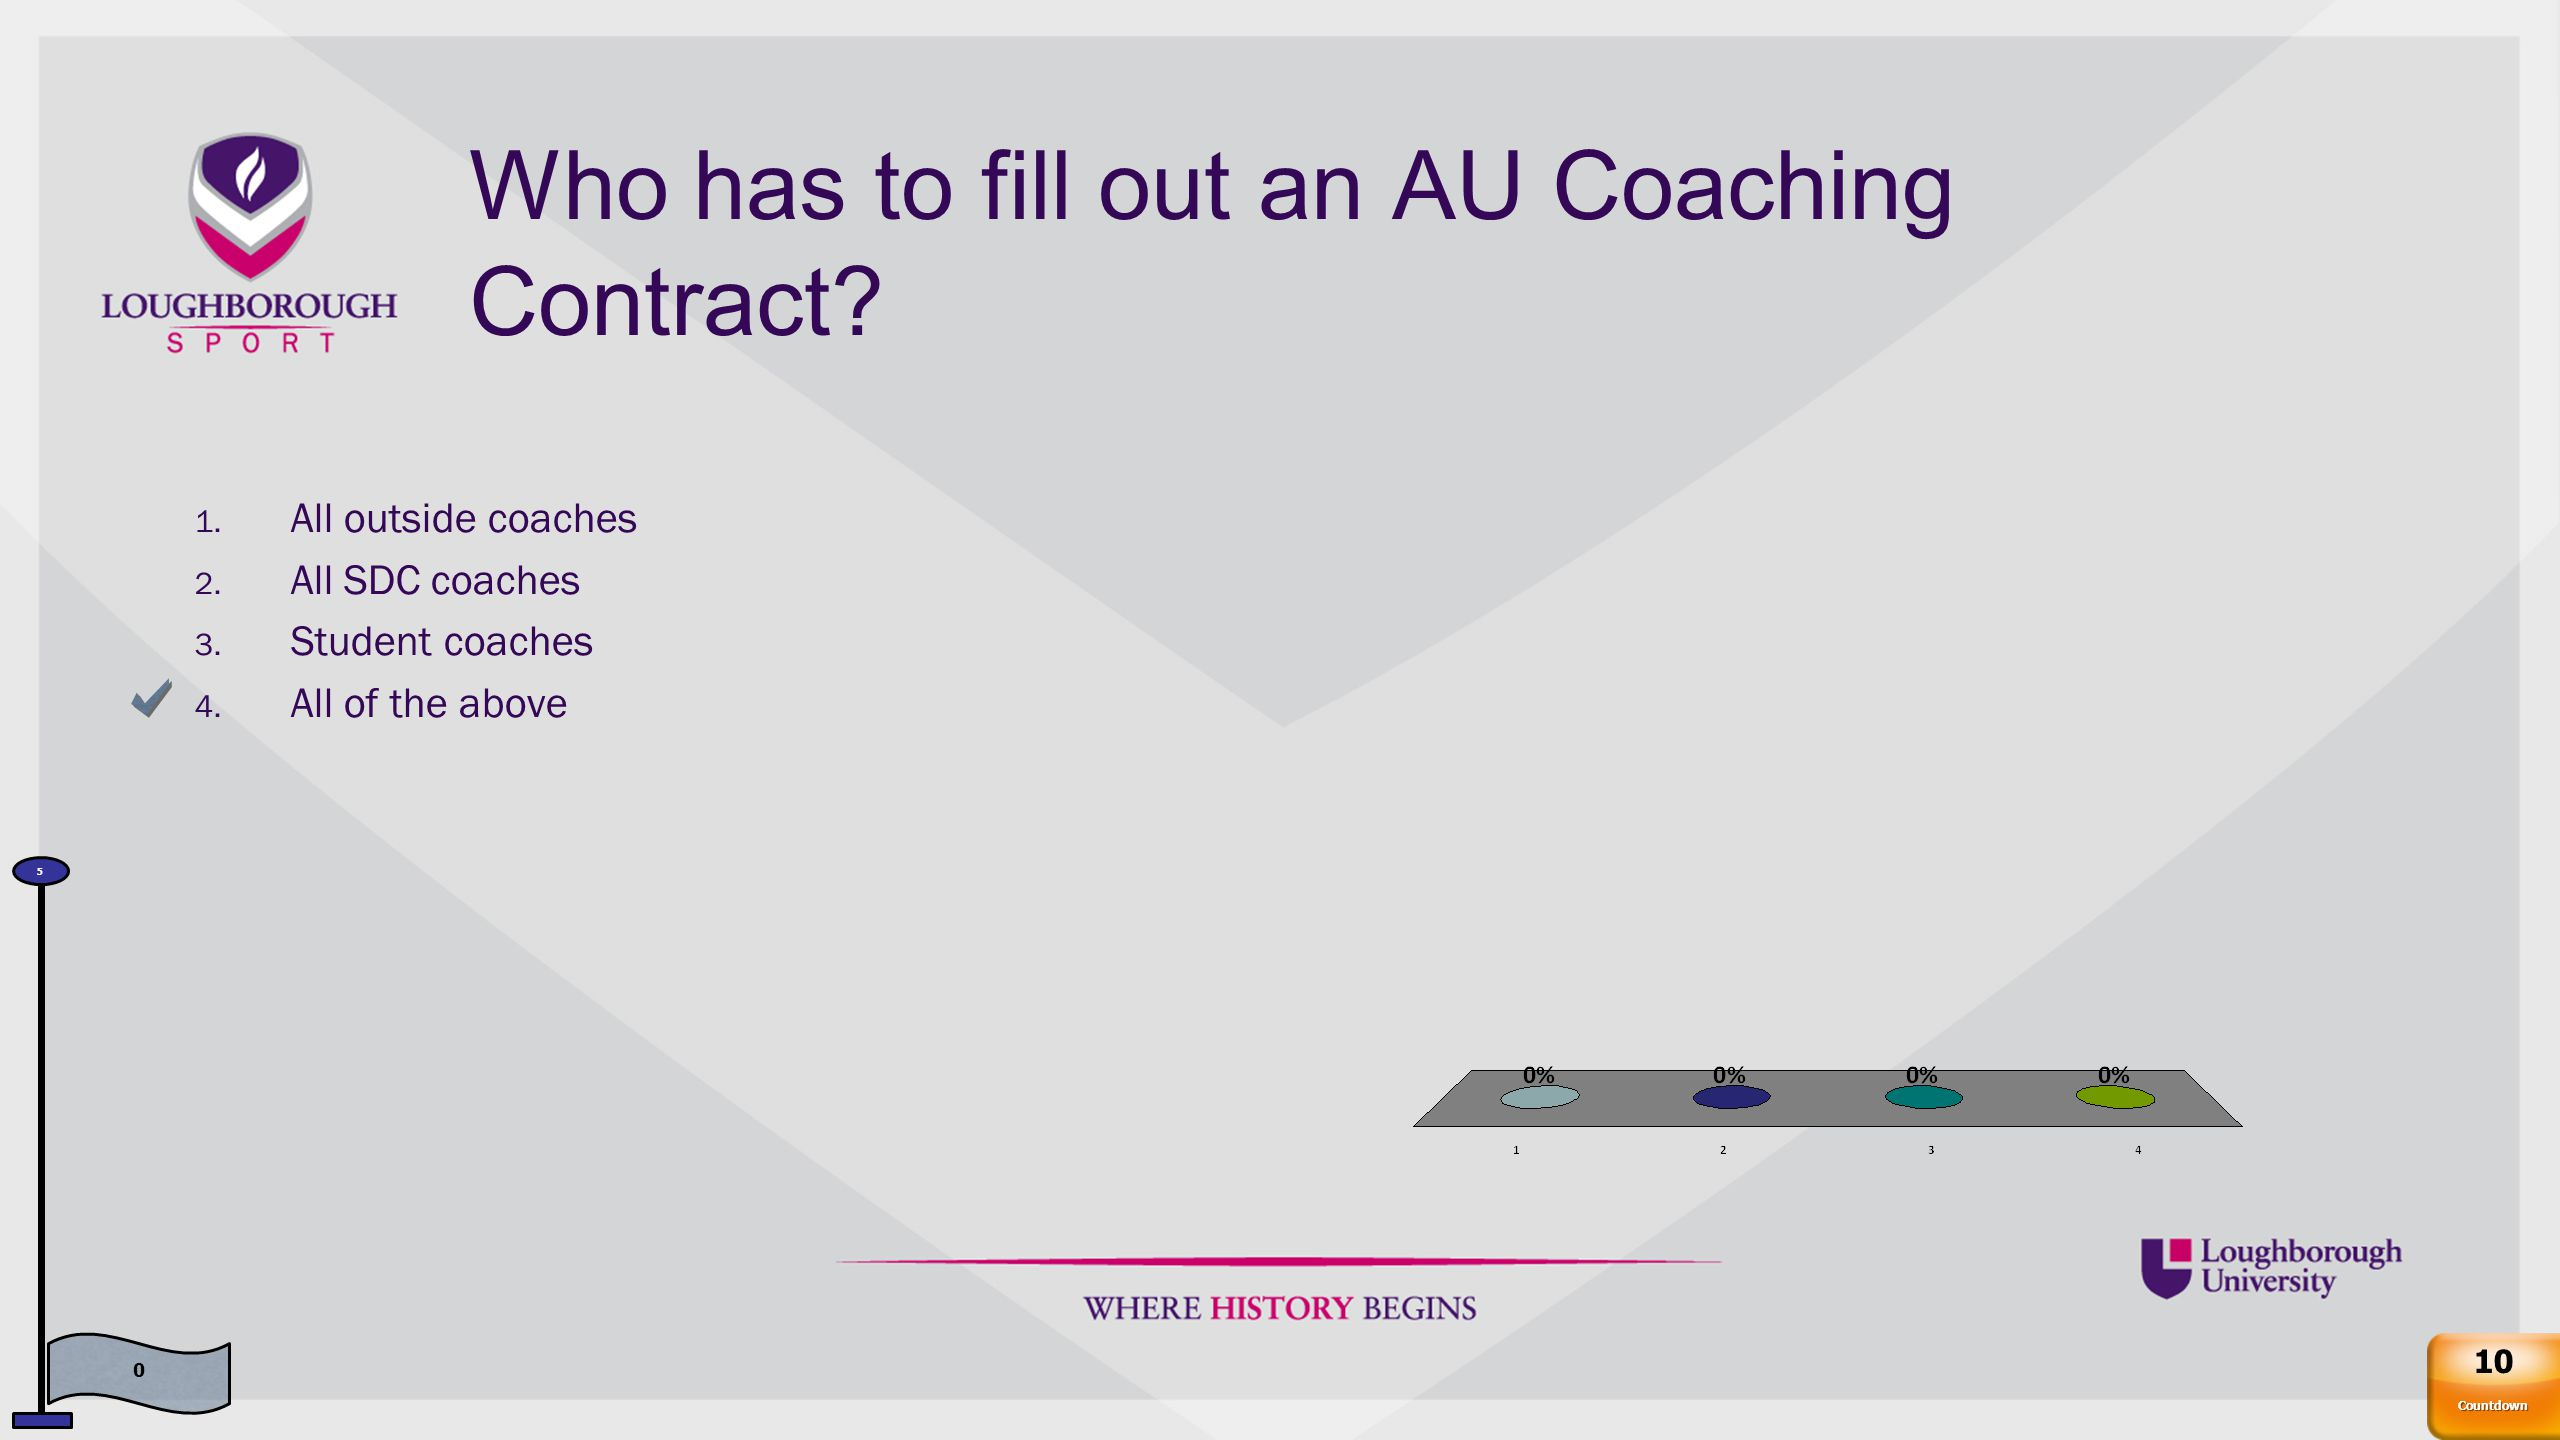 Who has to fill out an AU Coaching Contract